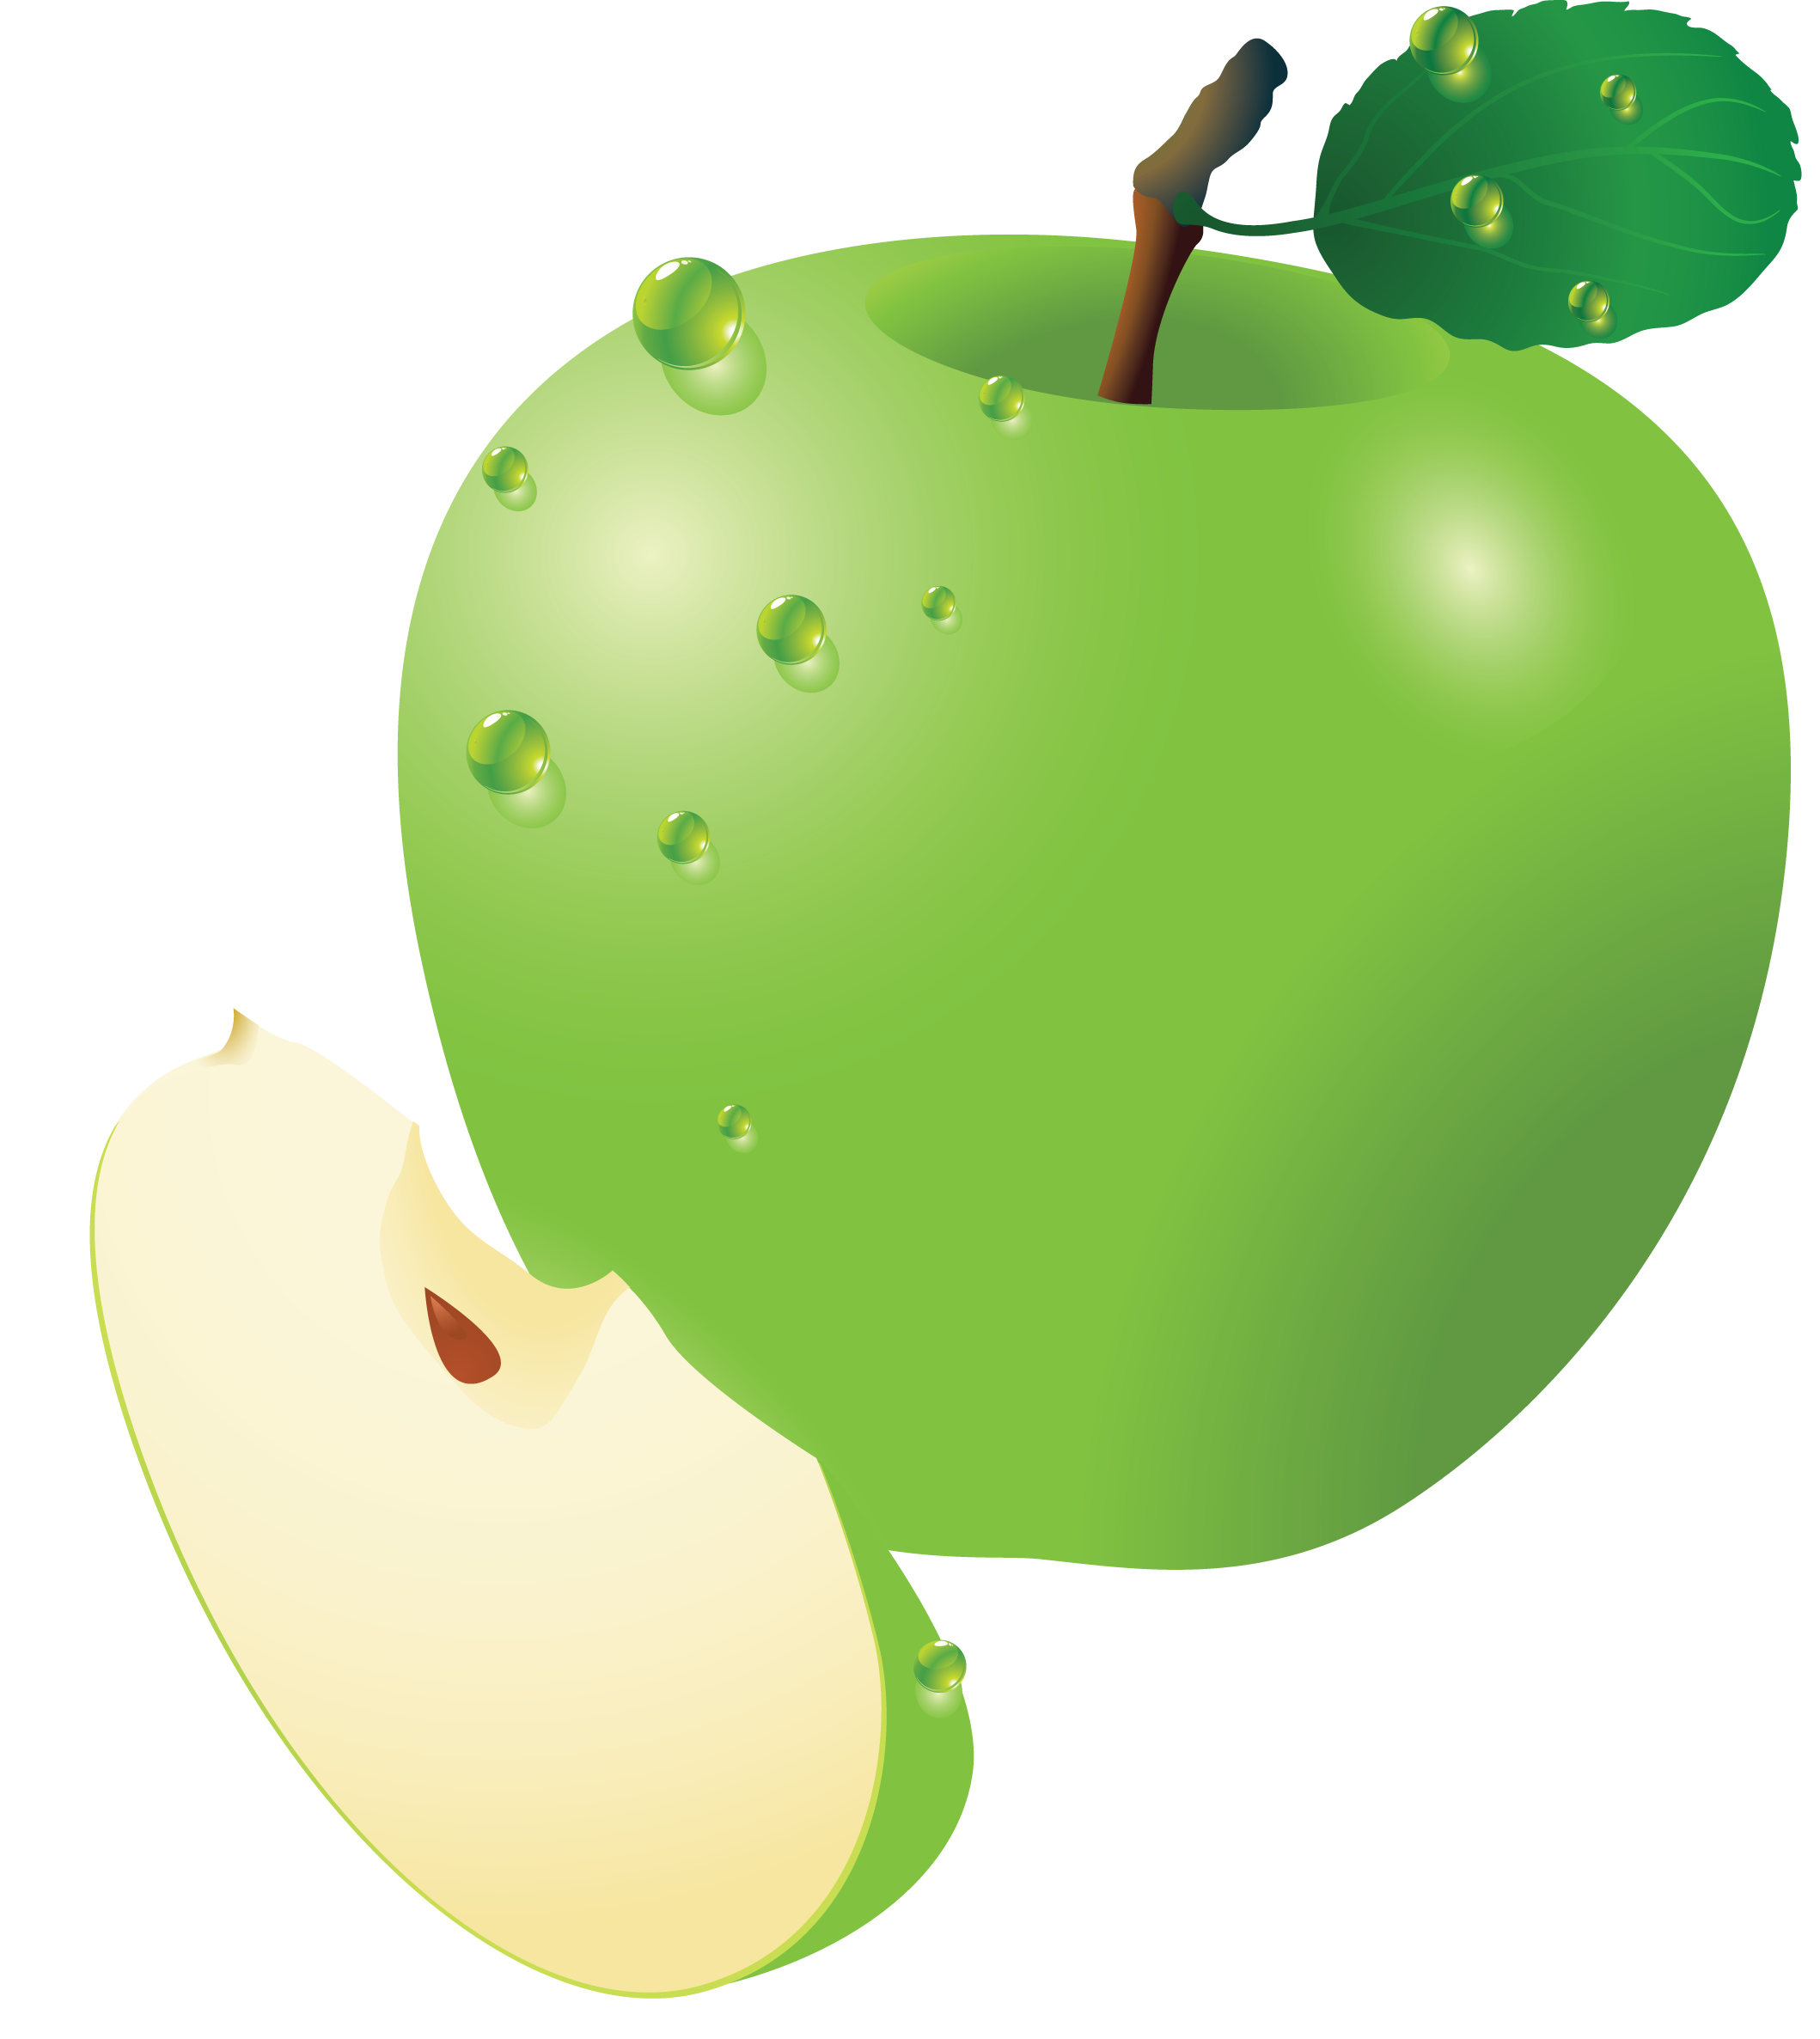 Green Apple's PNG Image Green apple, Apple, Green